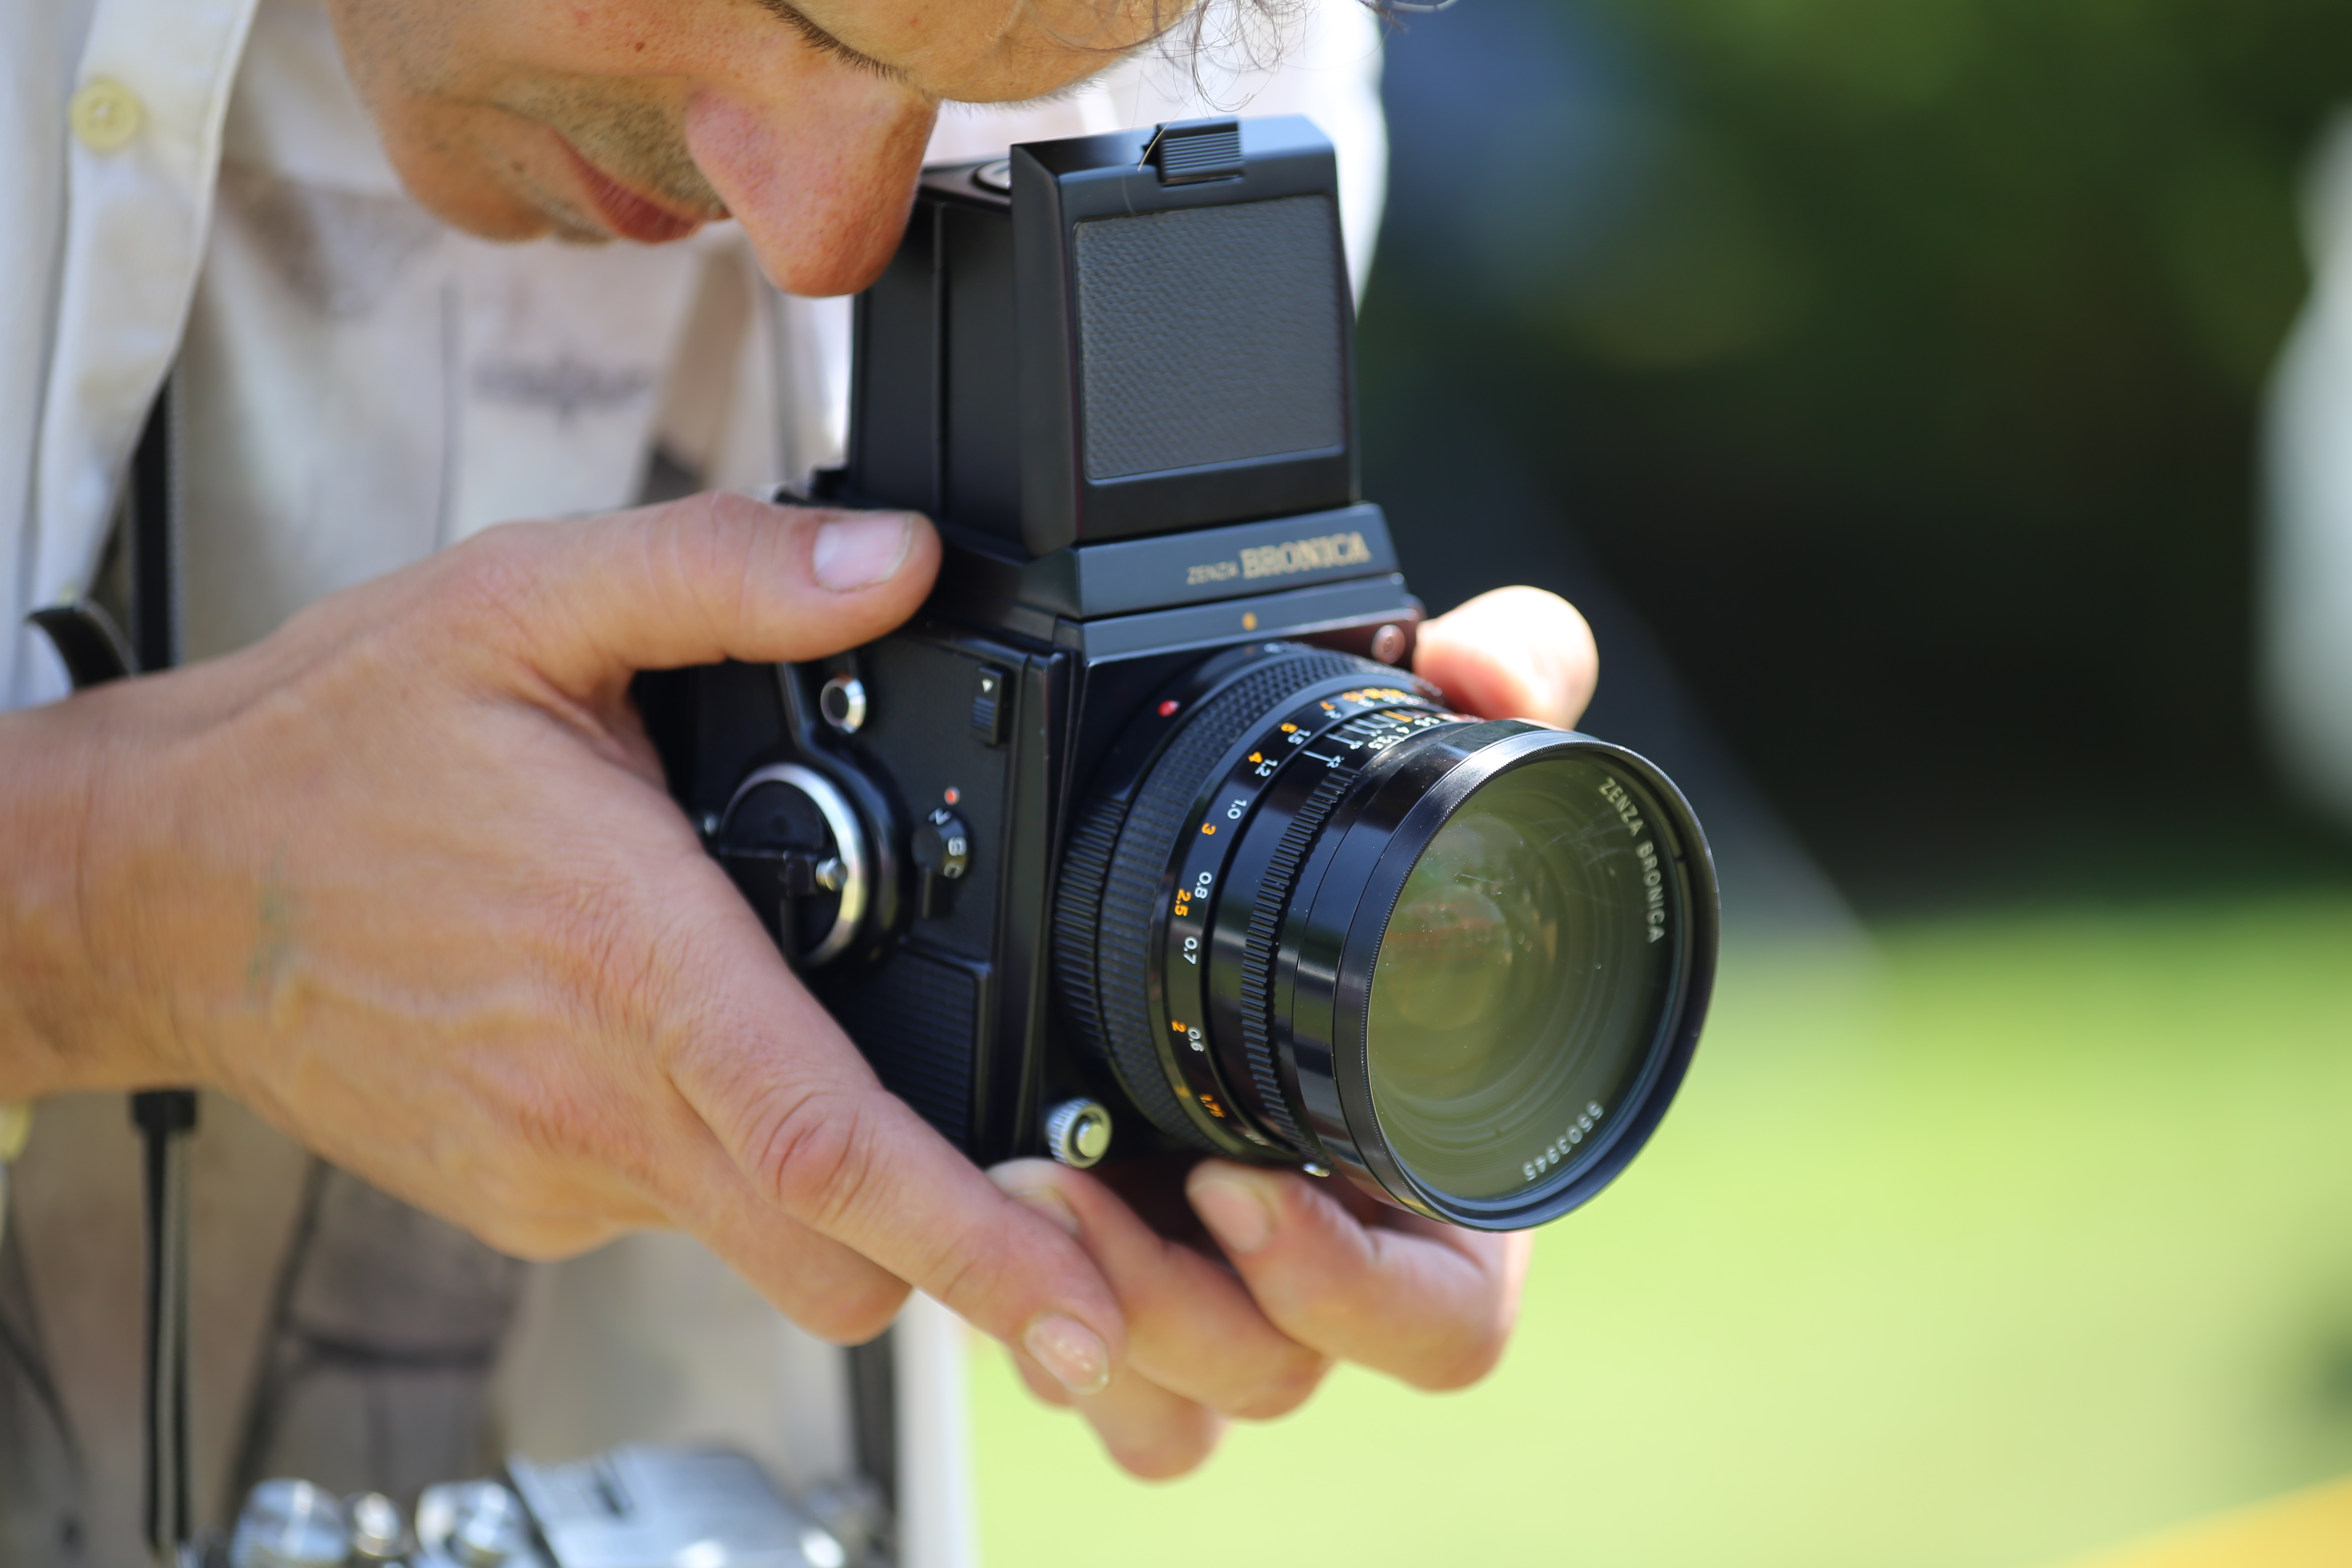 File:Photographing with Zenza Bronica SQ medium format SLR camera